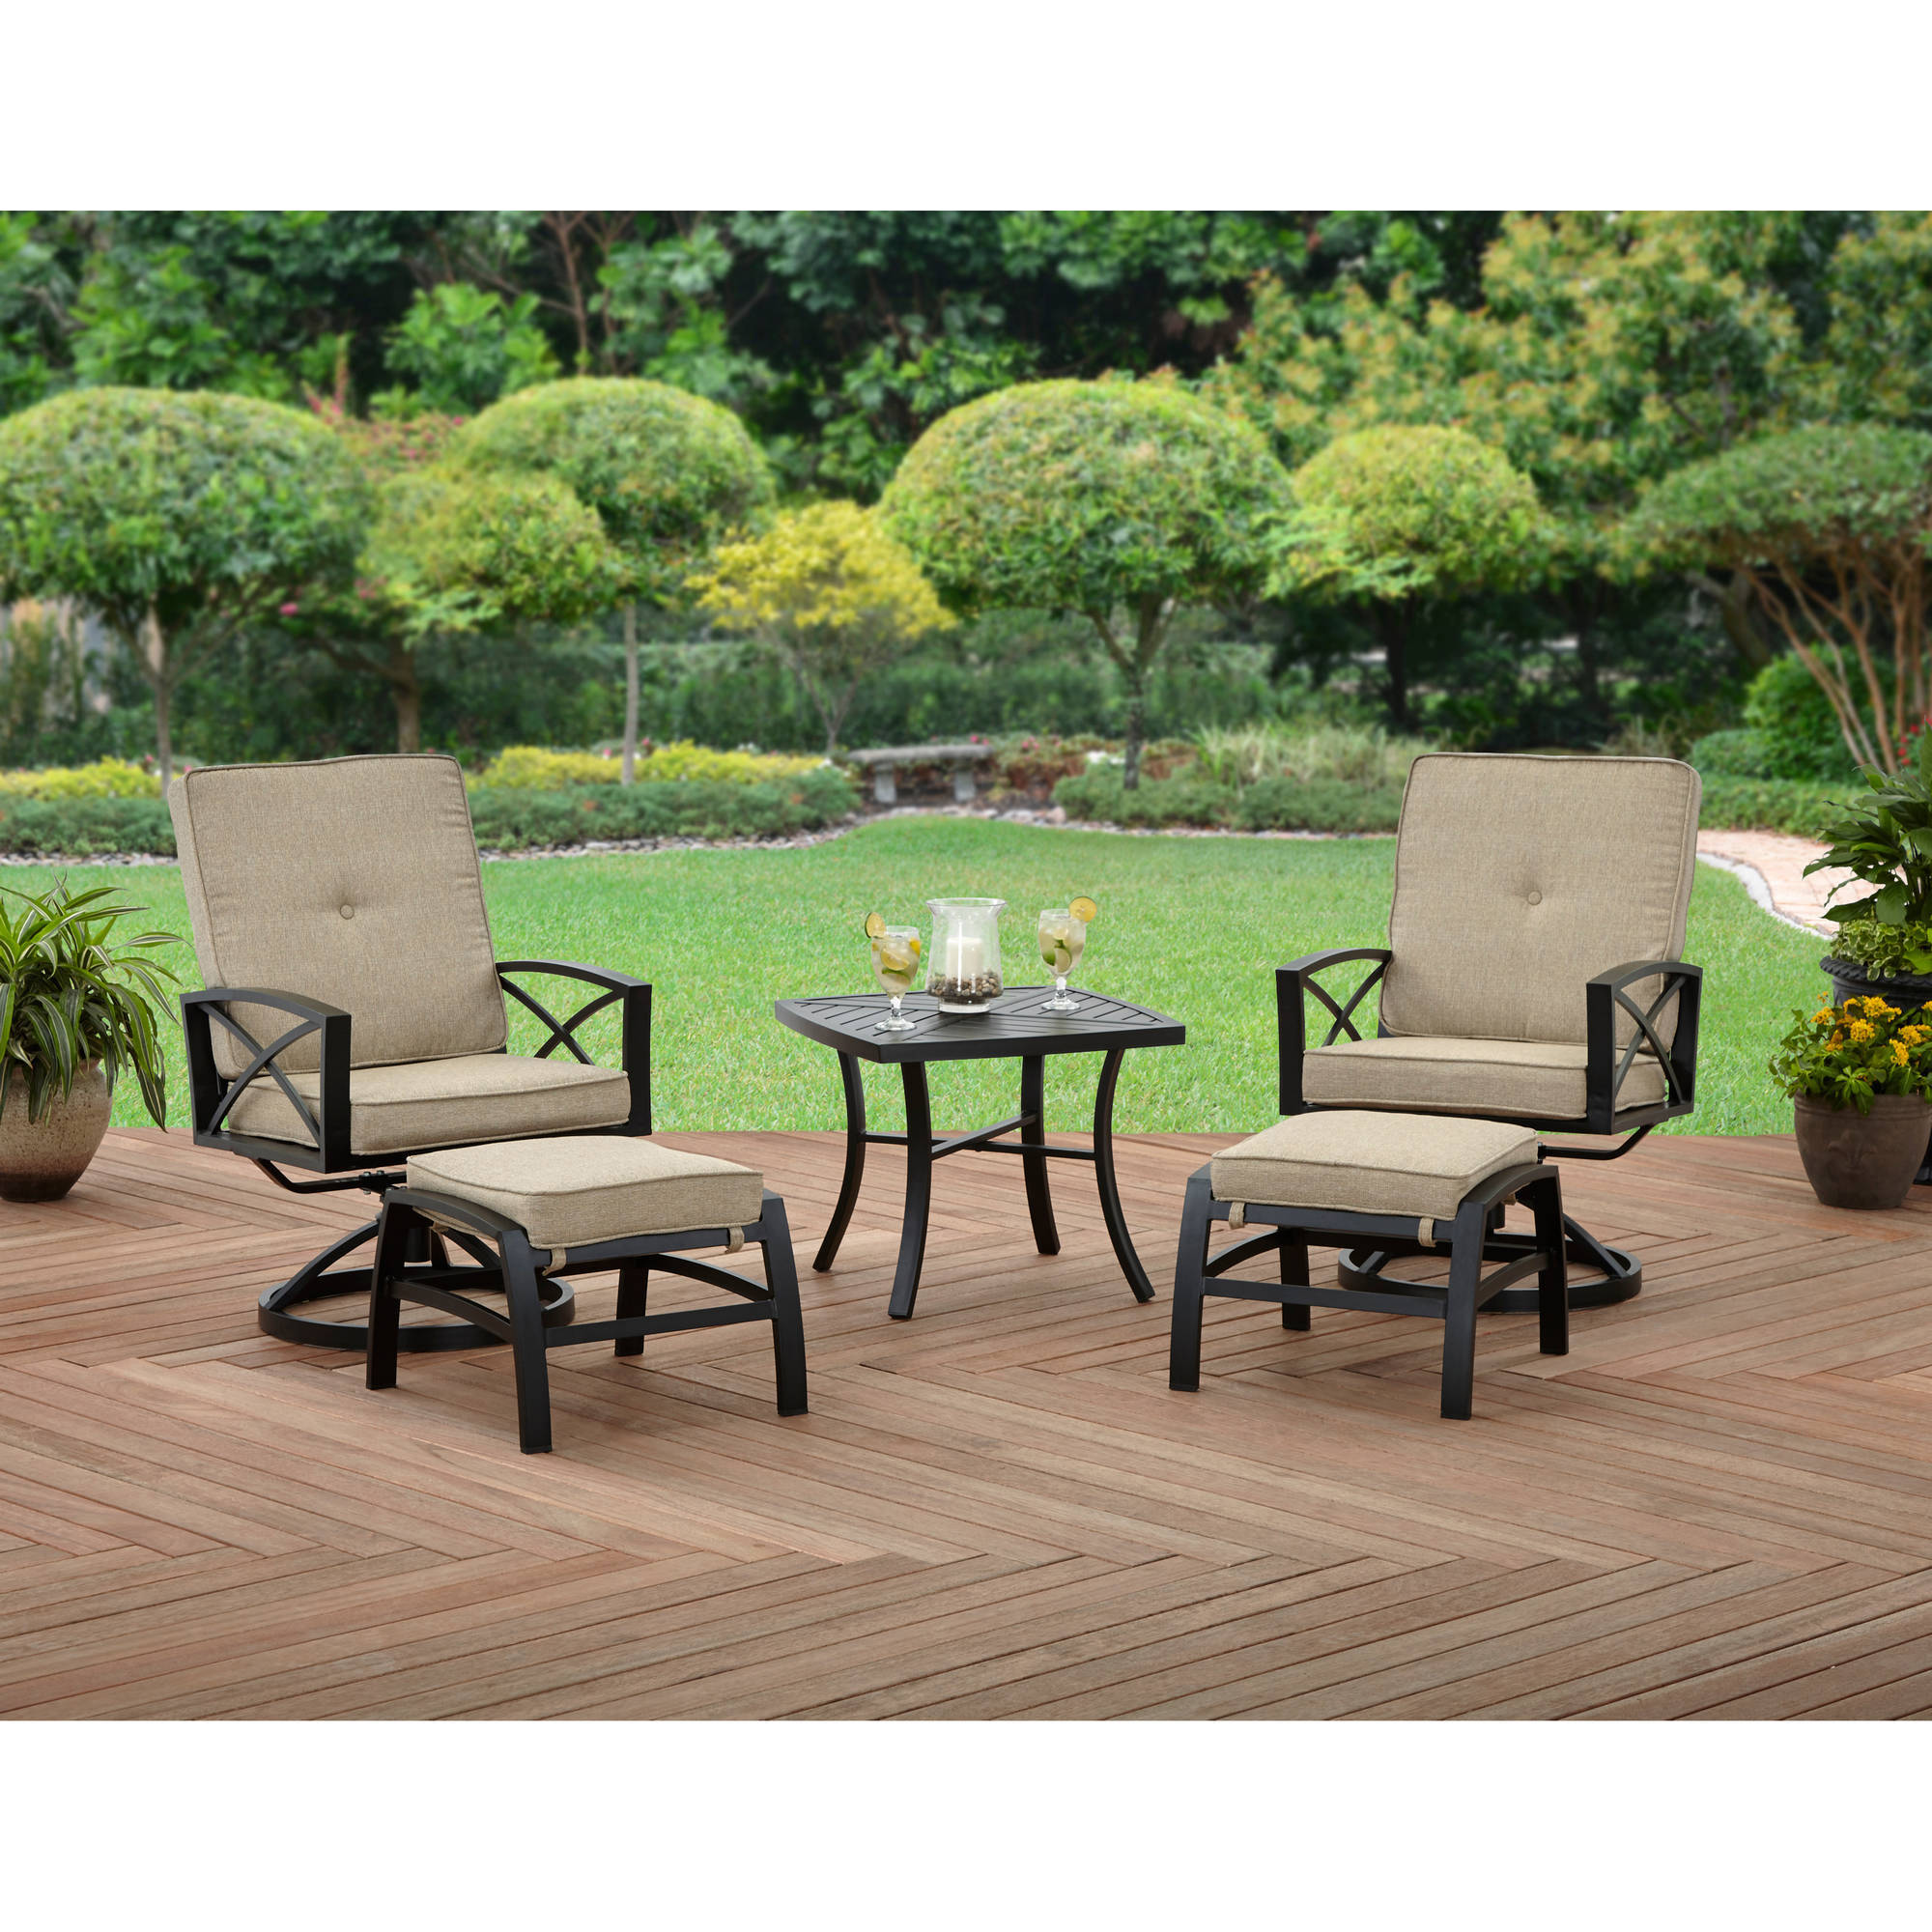 Better Homes and Gardens Douglas Lane 5-Piece Leisure Set